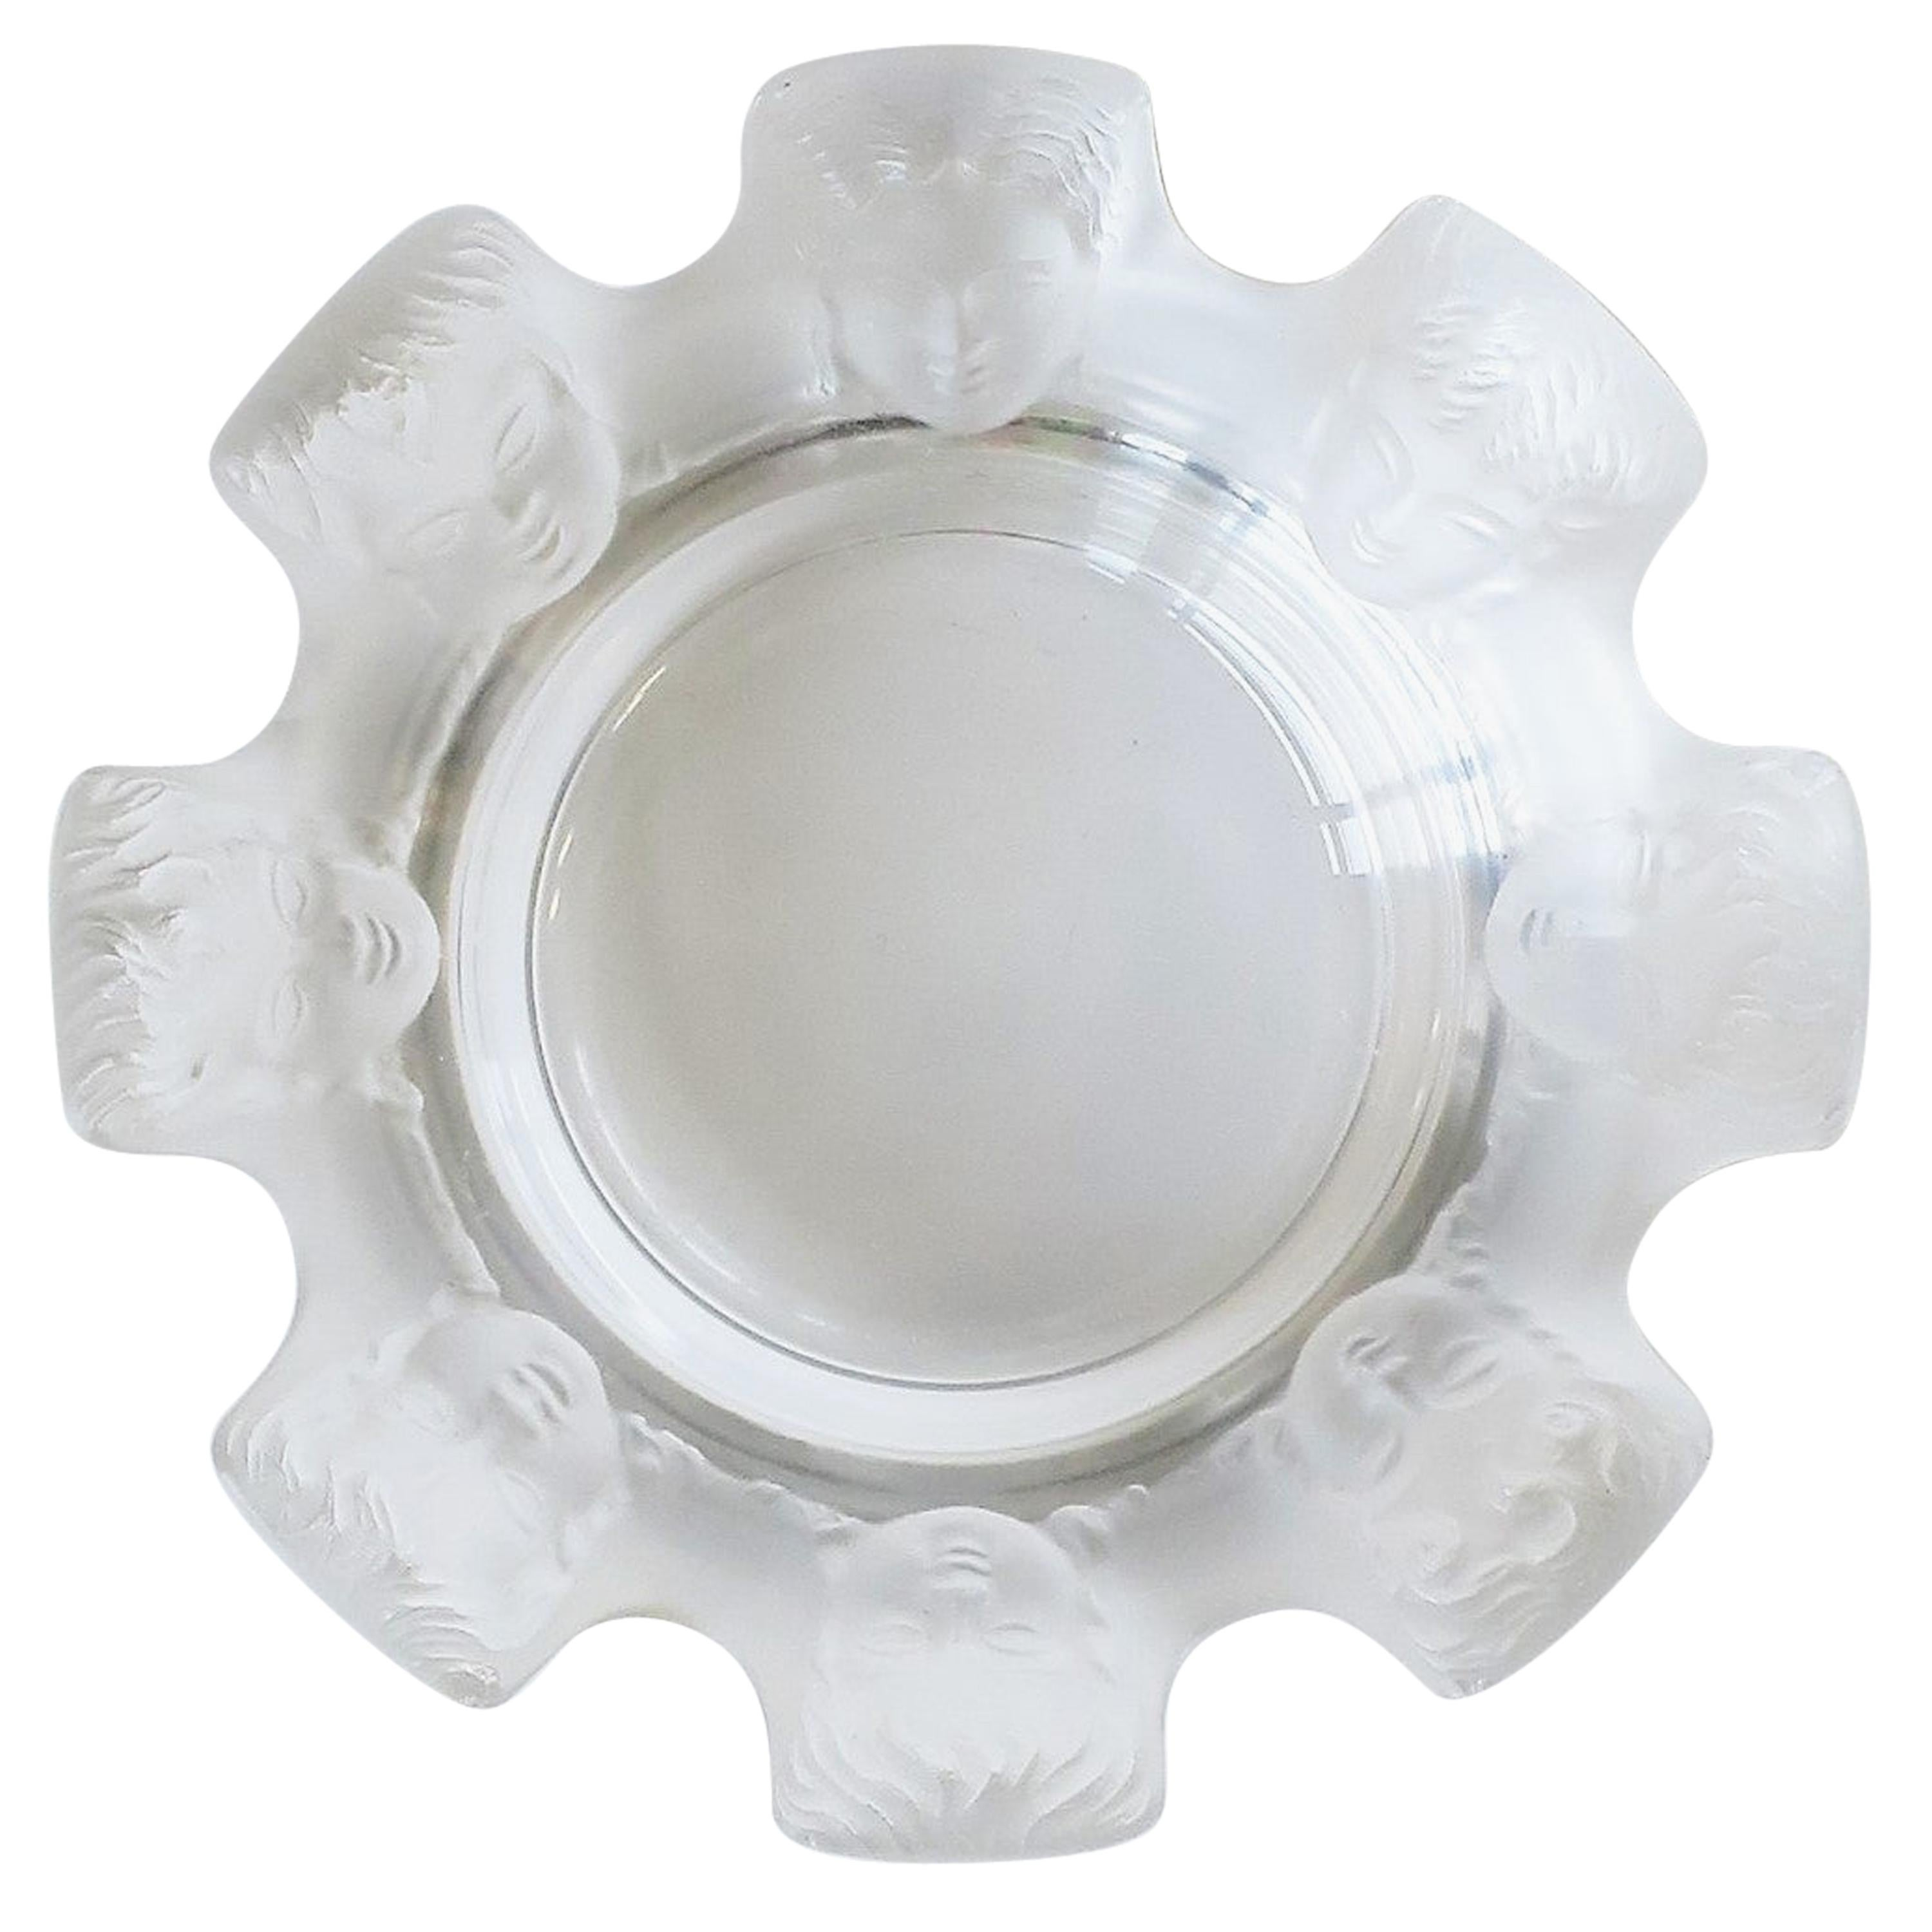 Lalique French Crystal Jewelry Dish in the Neoclassical Style